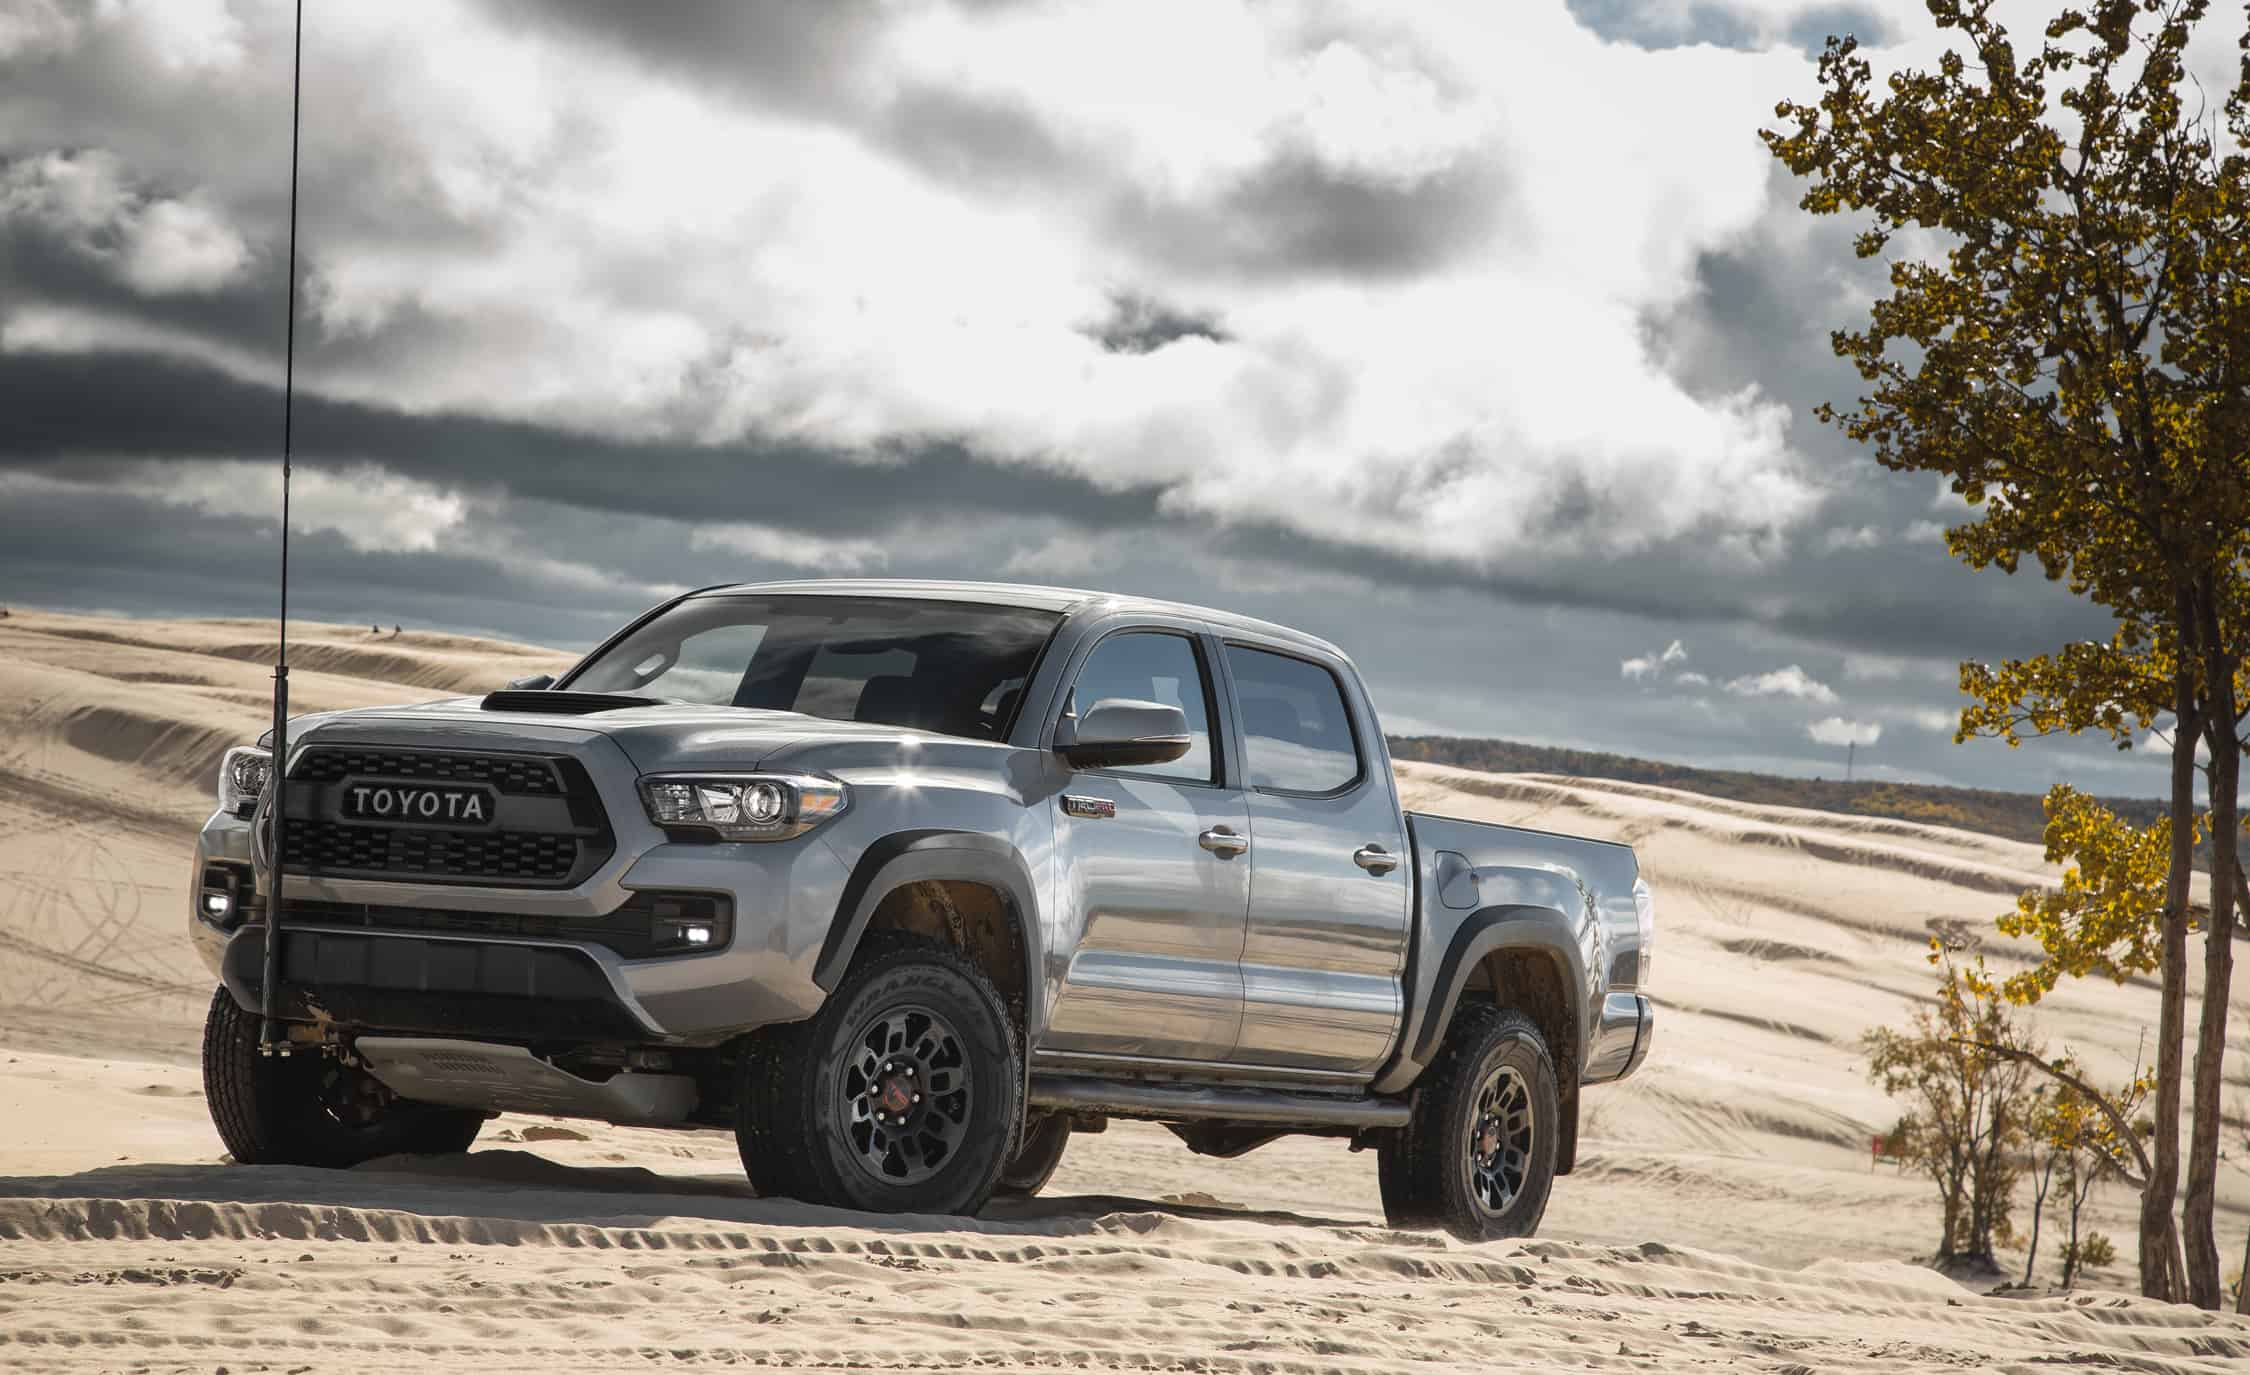 The Toyota Tacoma is one of the fastest trucks on the market